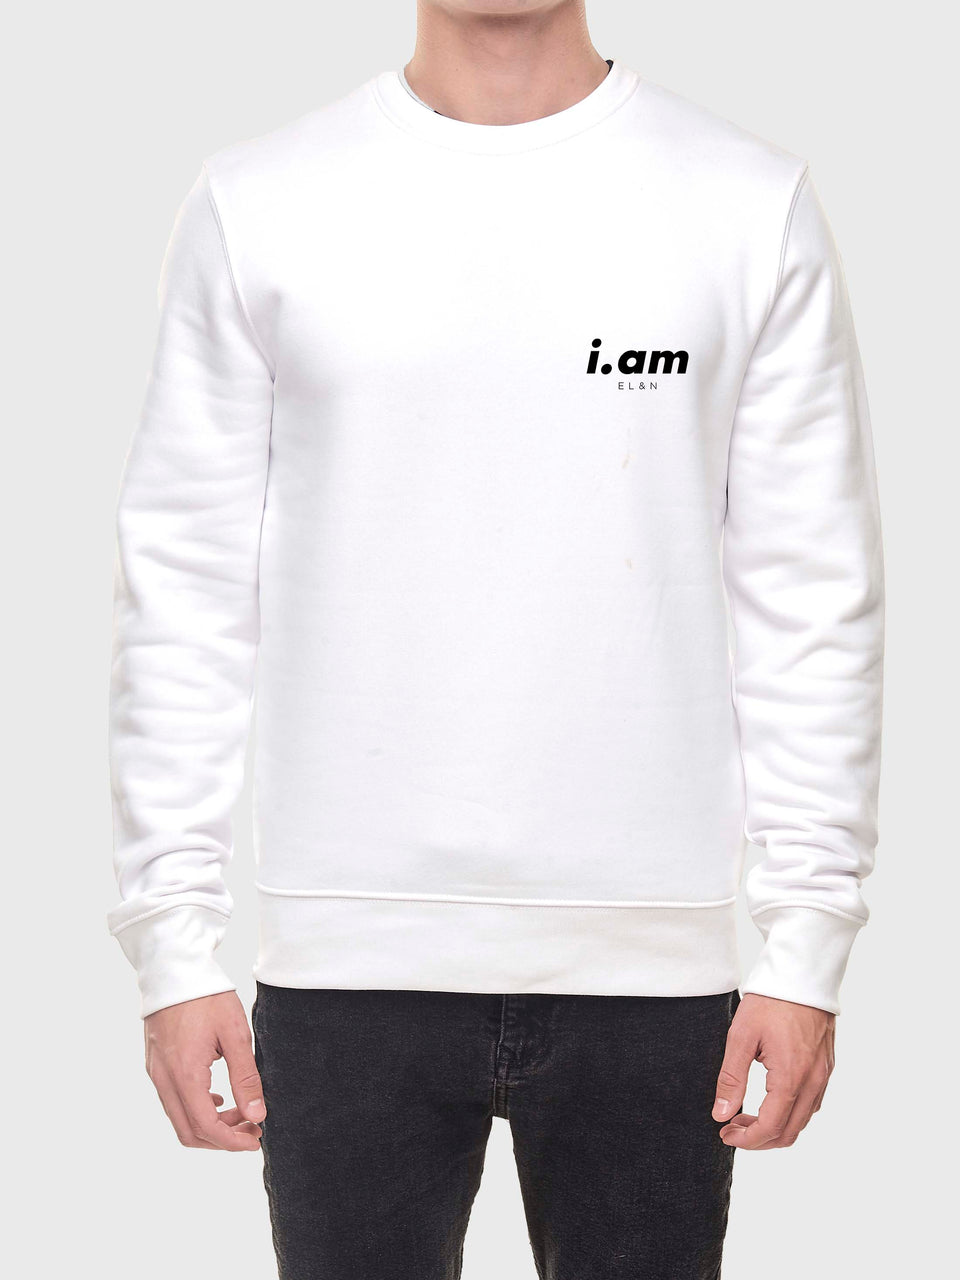 I am who I am - White - Unisex Sweatshirt